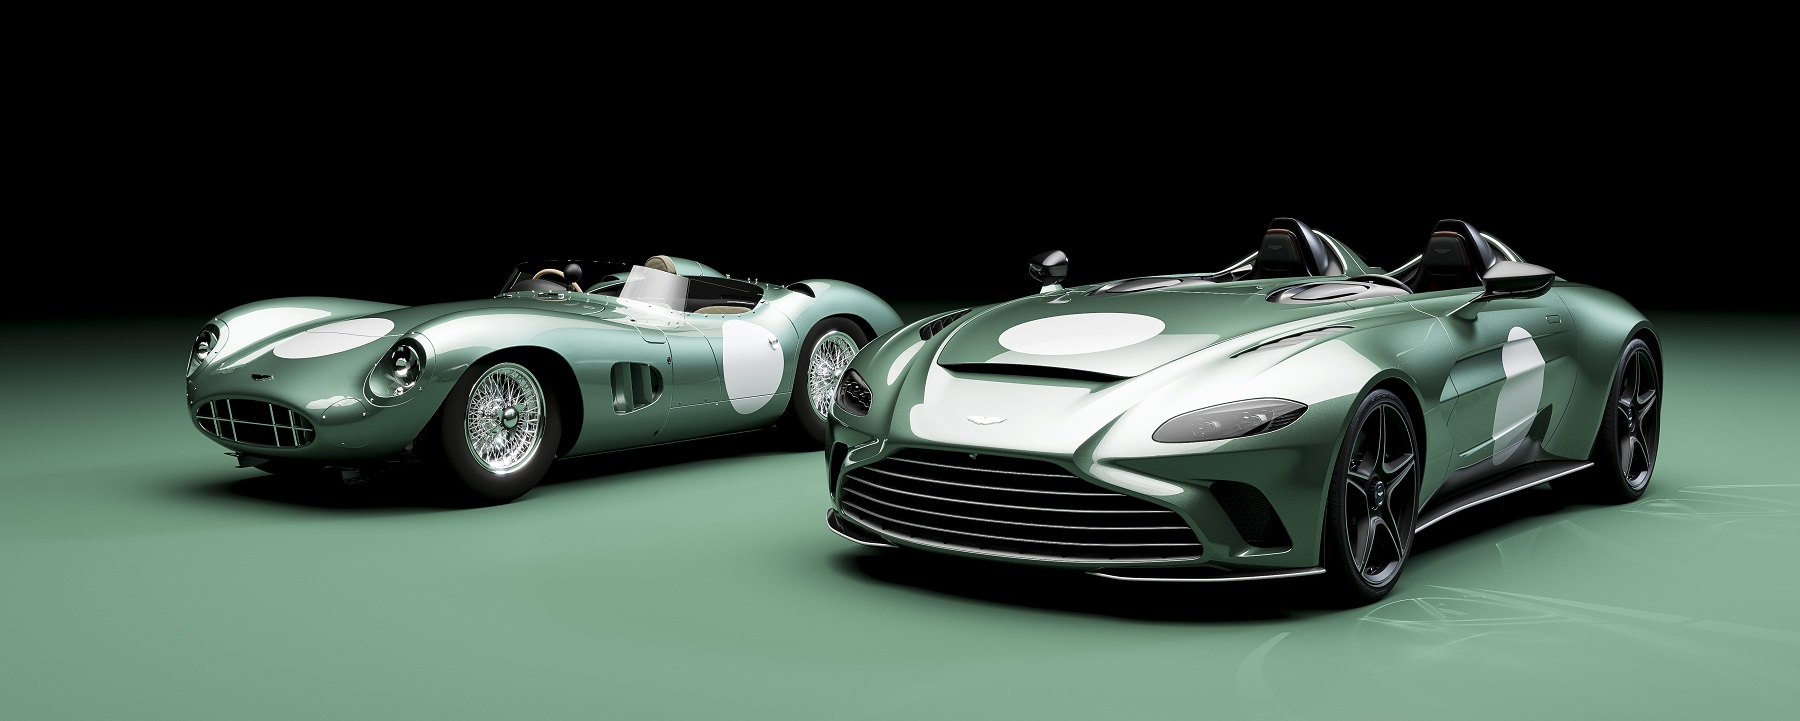 Optional_DBR1_specification_now_available_on_V12_Speedster01